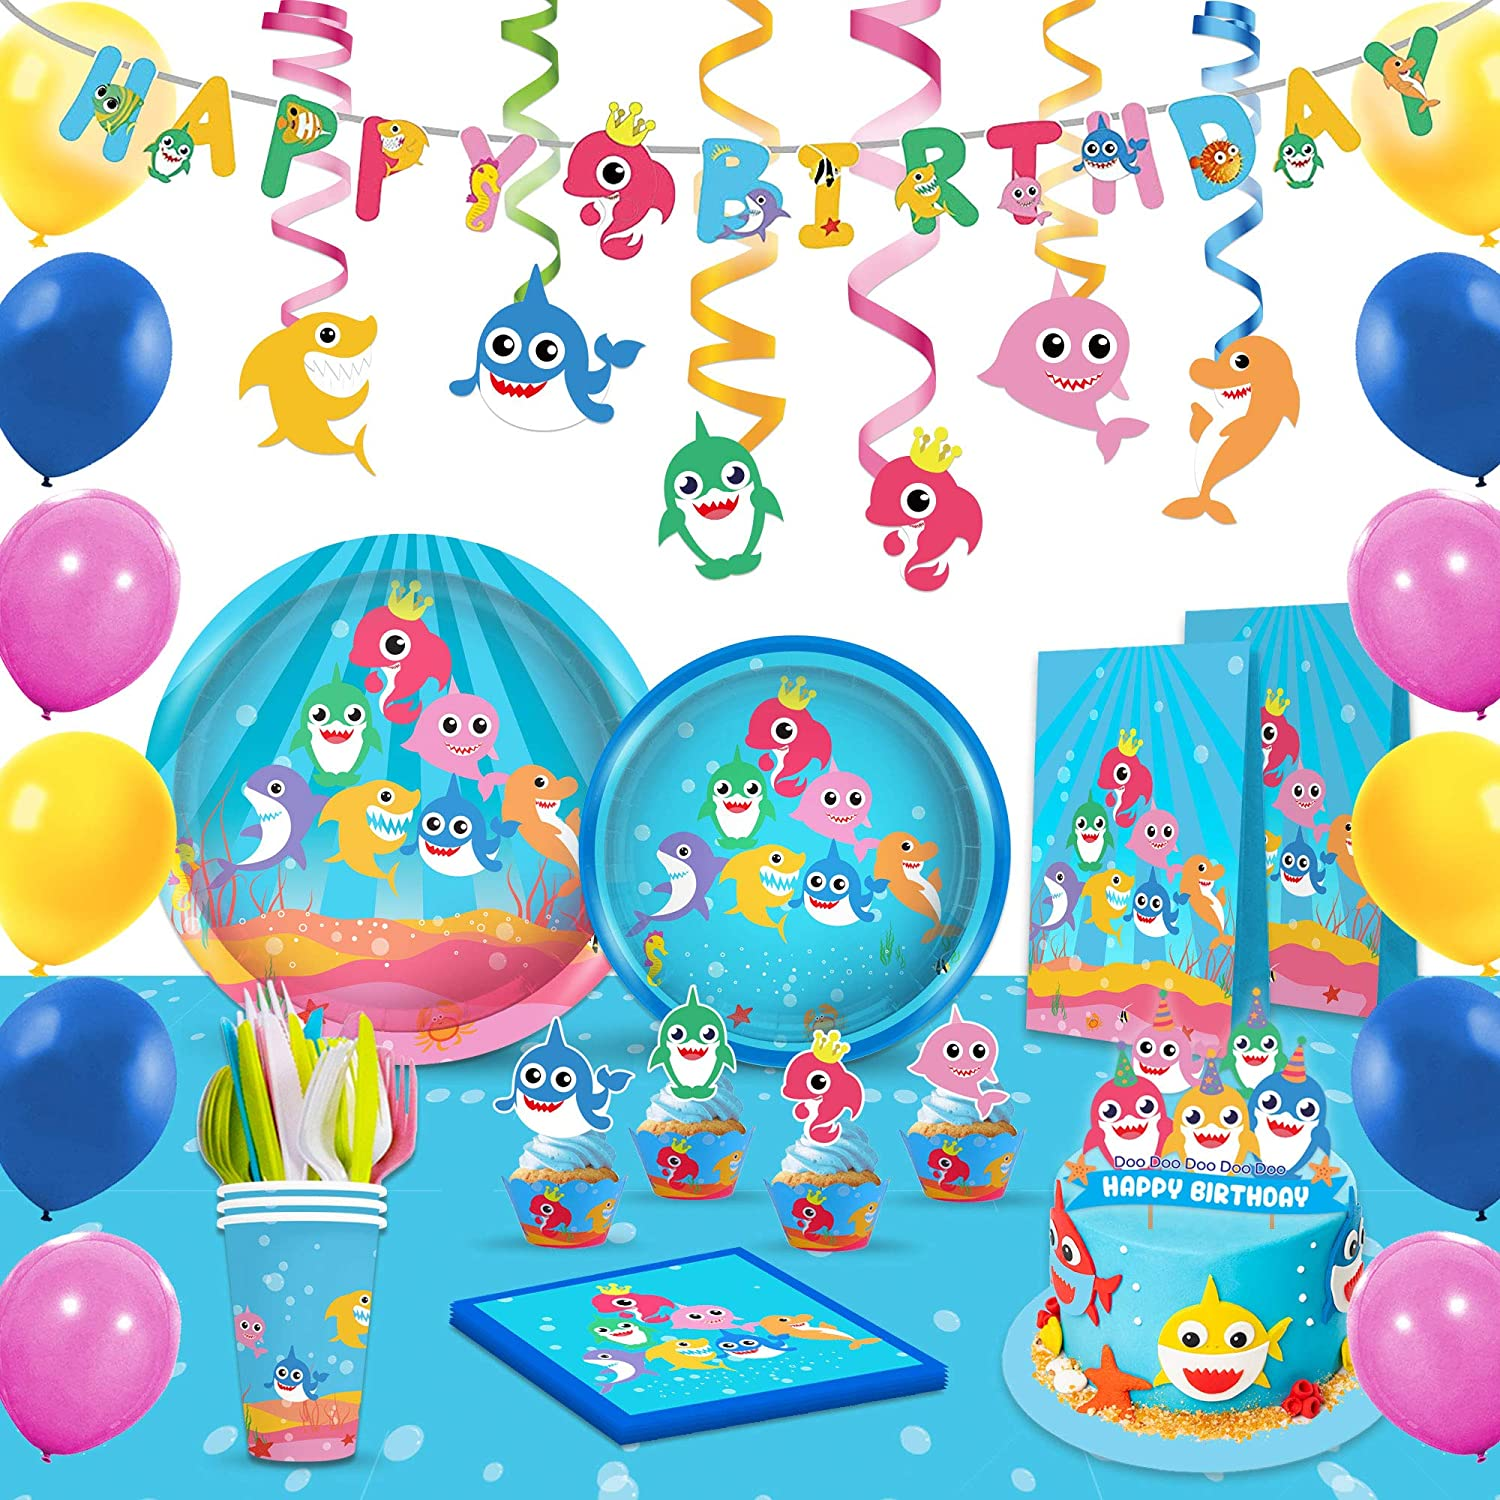 Shark Party Supplies Set & Tableware kit - Perfect for Birthday Party Decorations - Includes Plates, Napkins, Cups, Straws, Cutlery